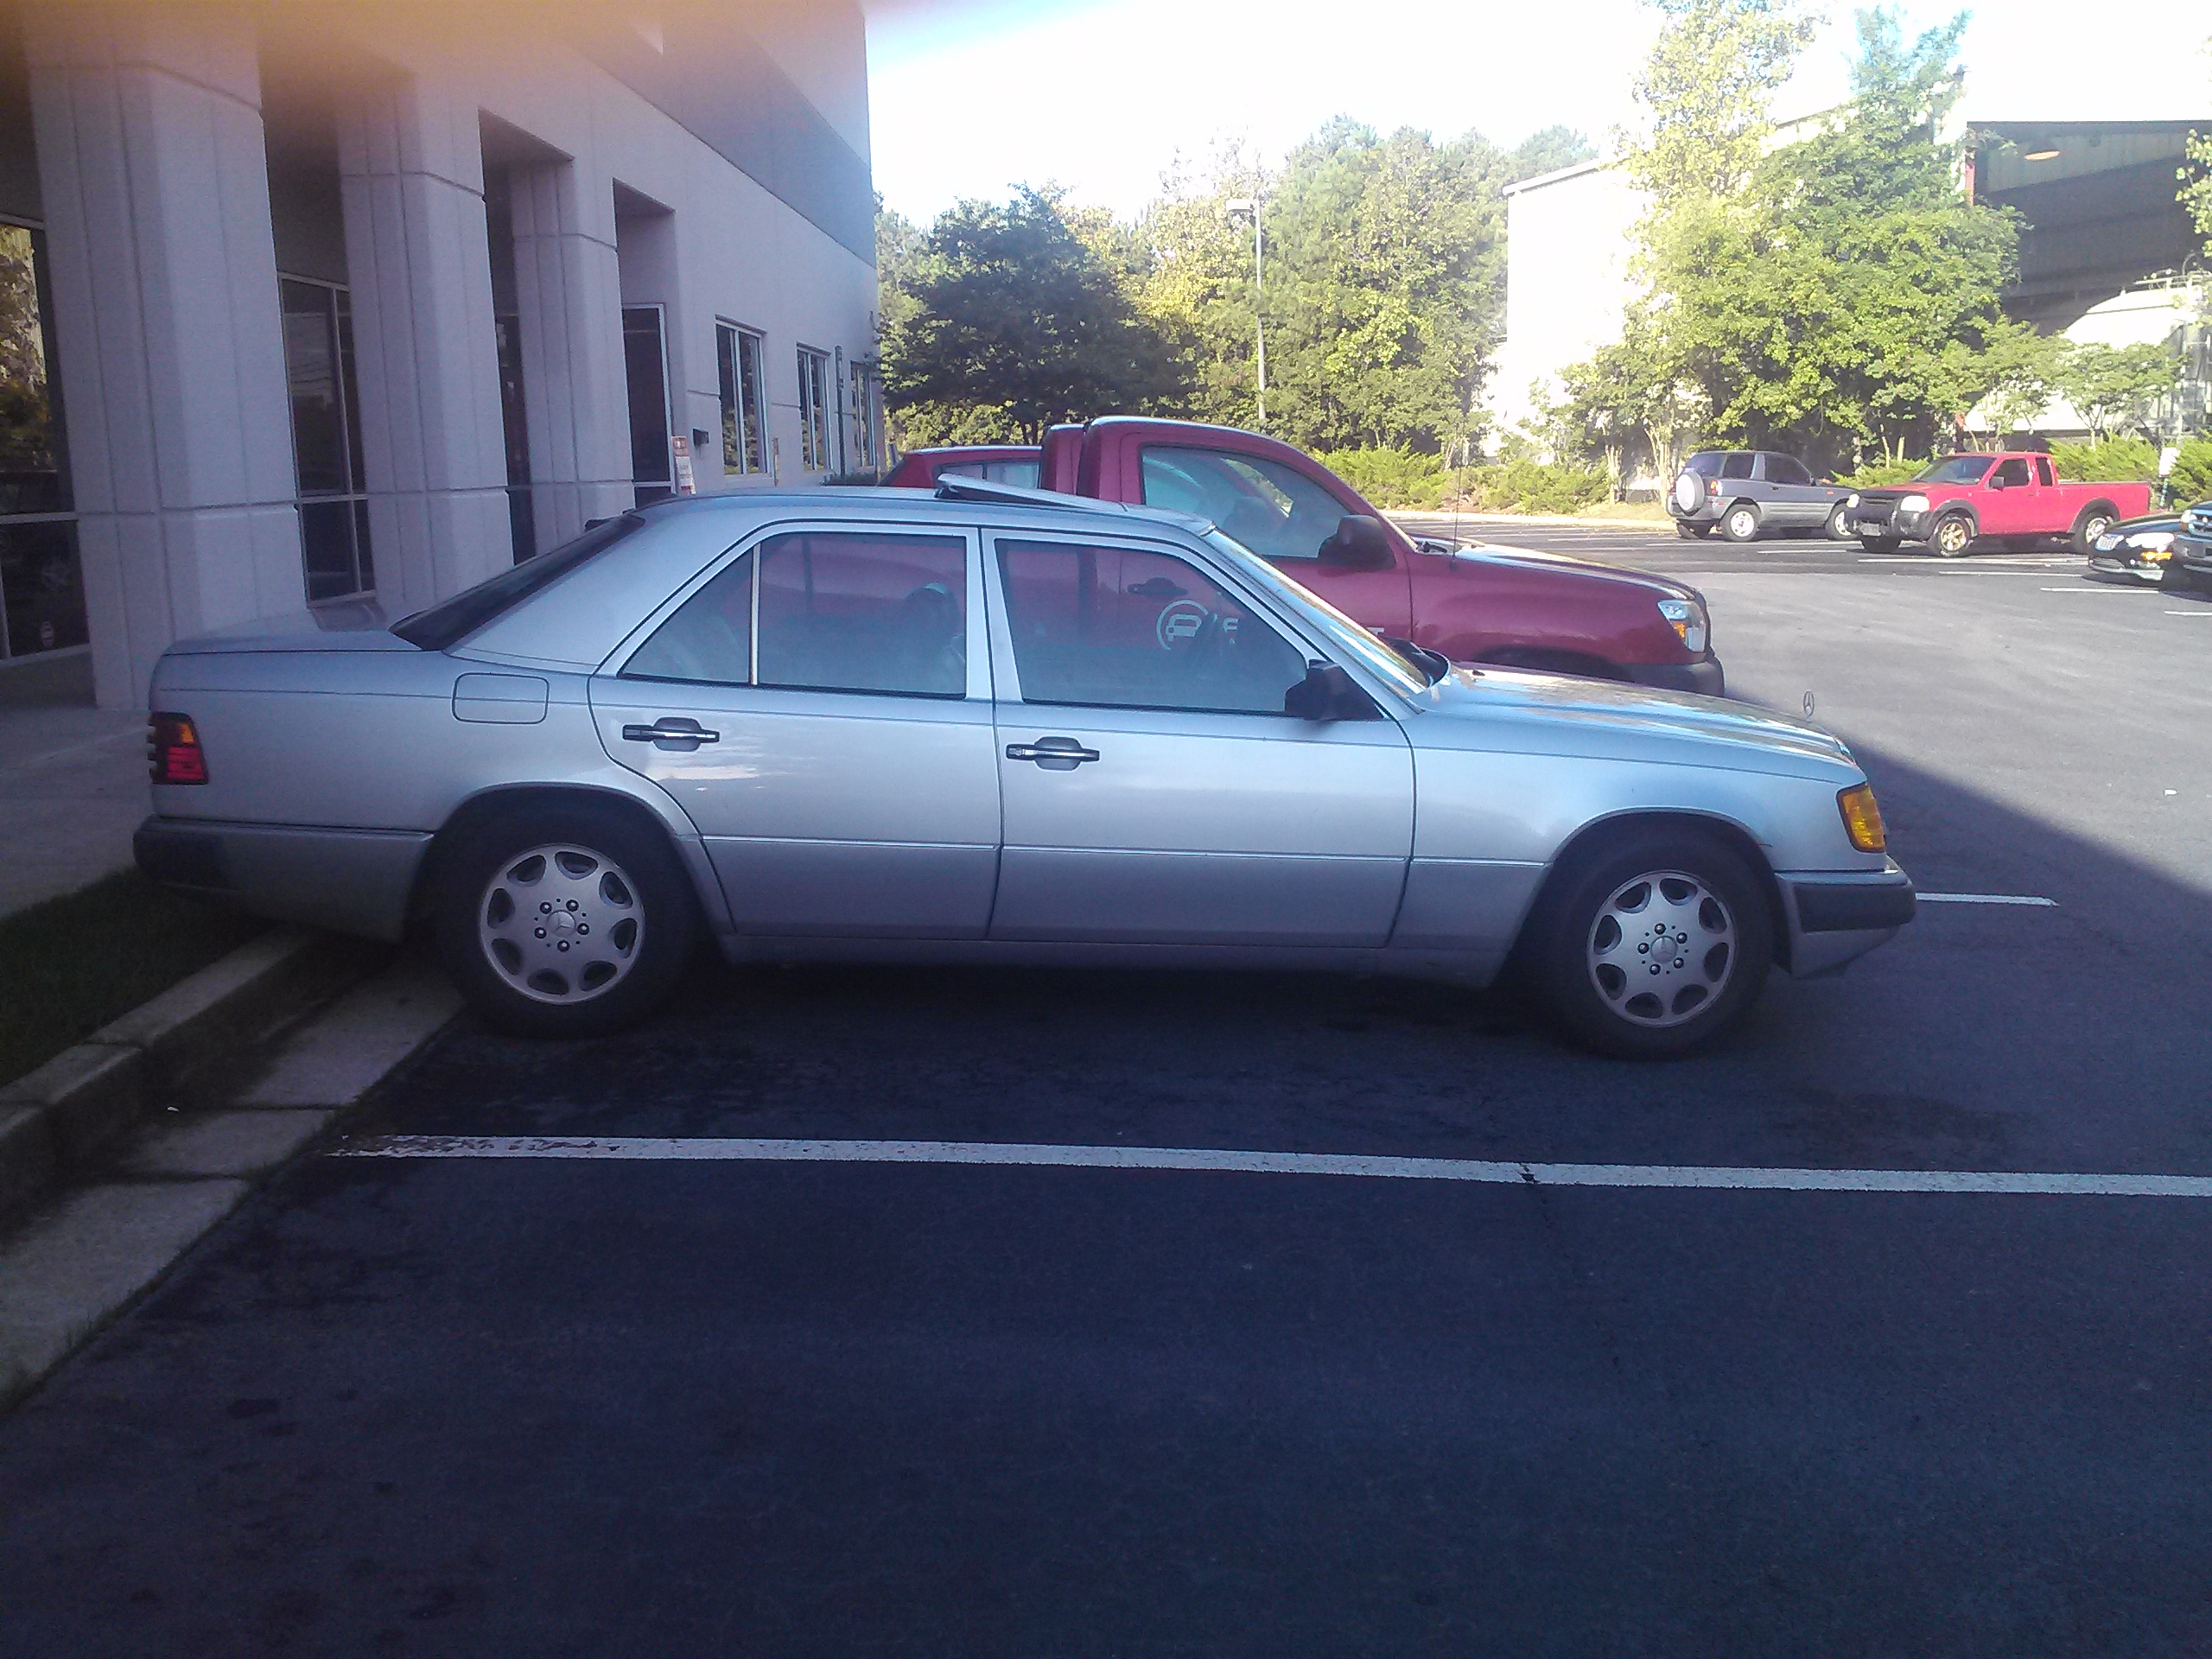 Coal 1992 Mercedes Benz 400e The Sleeper 1994 Mercedesbenz E420 Engine Wiring Harness Genuine My 92 Has Over 300k And Still Drives Like Its New Only Complaint Is That Leather Not As Durable Mb Tex